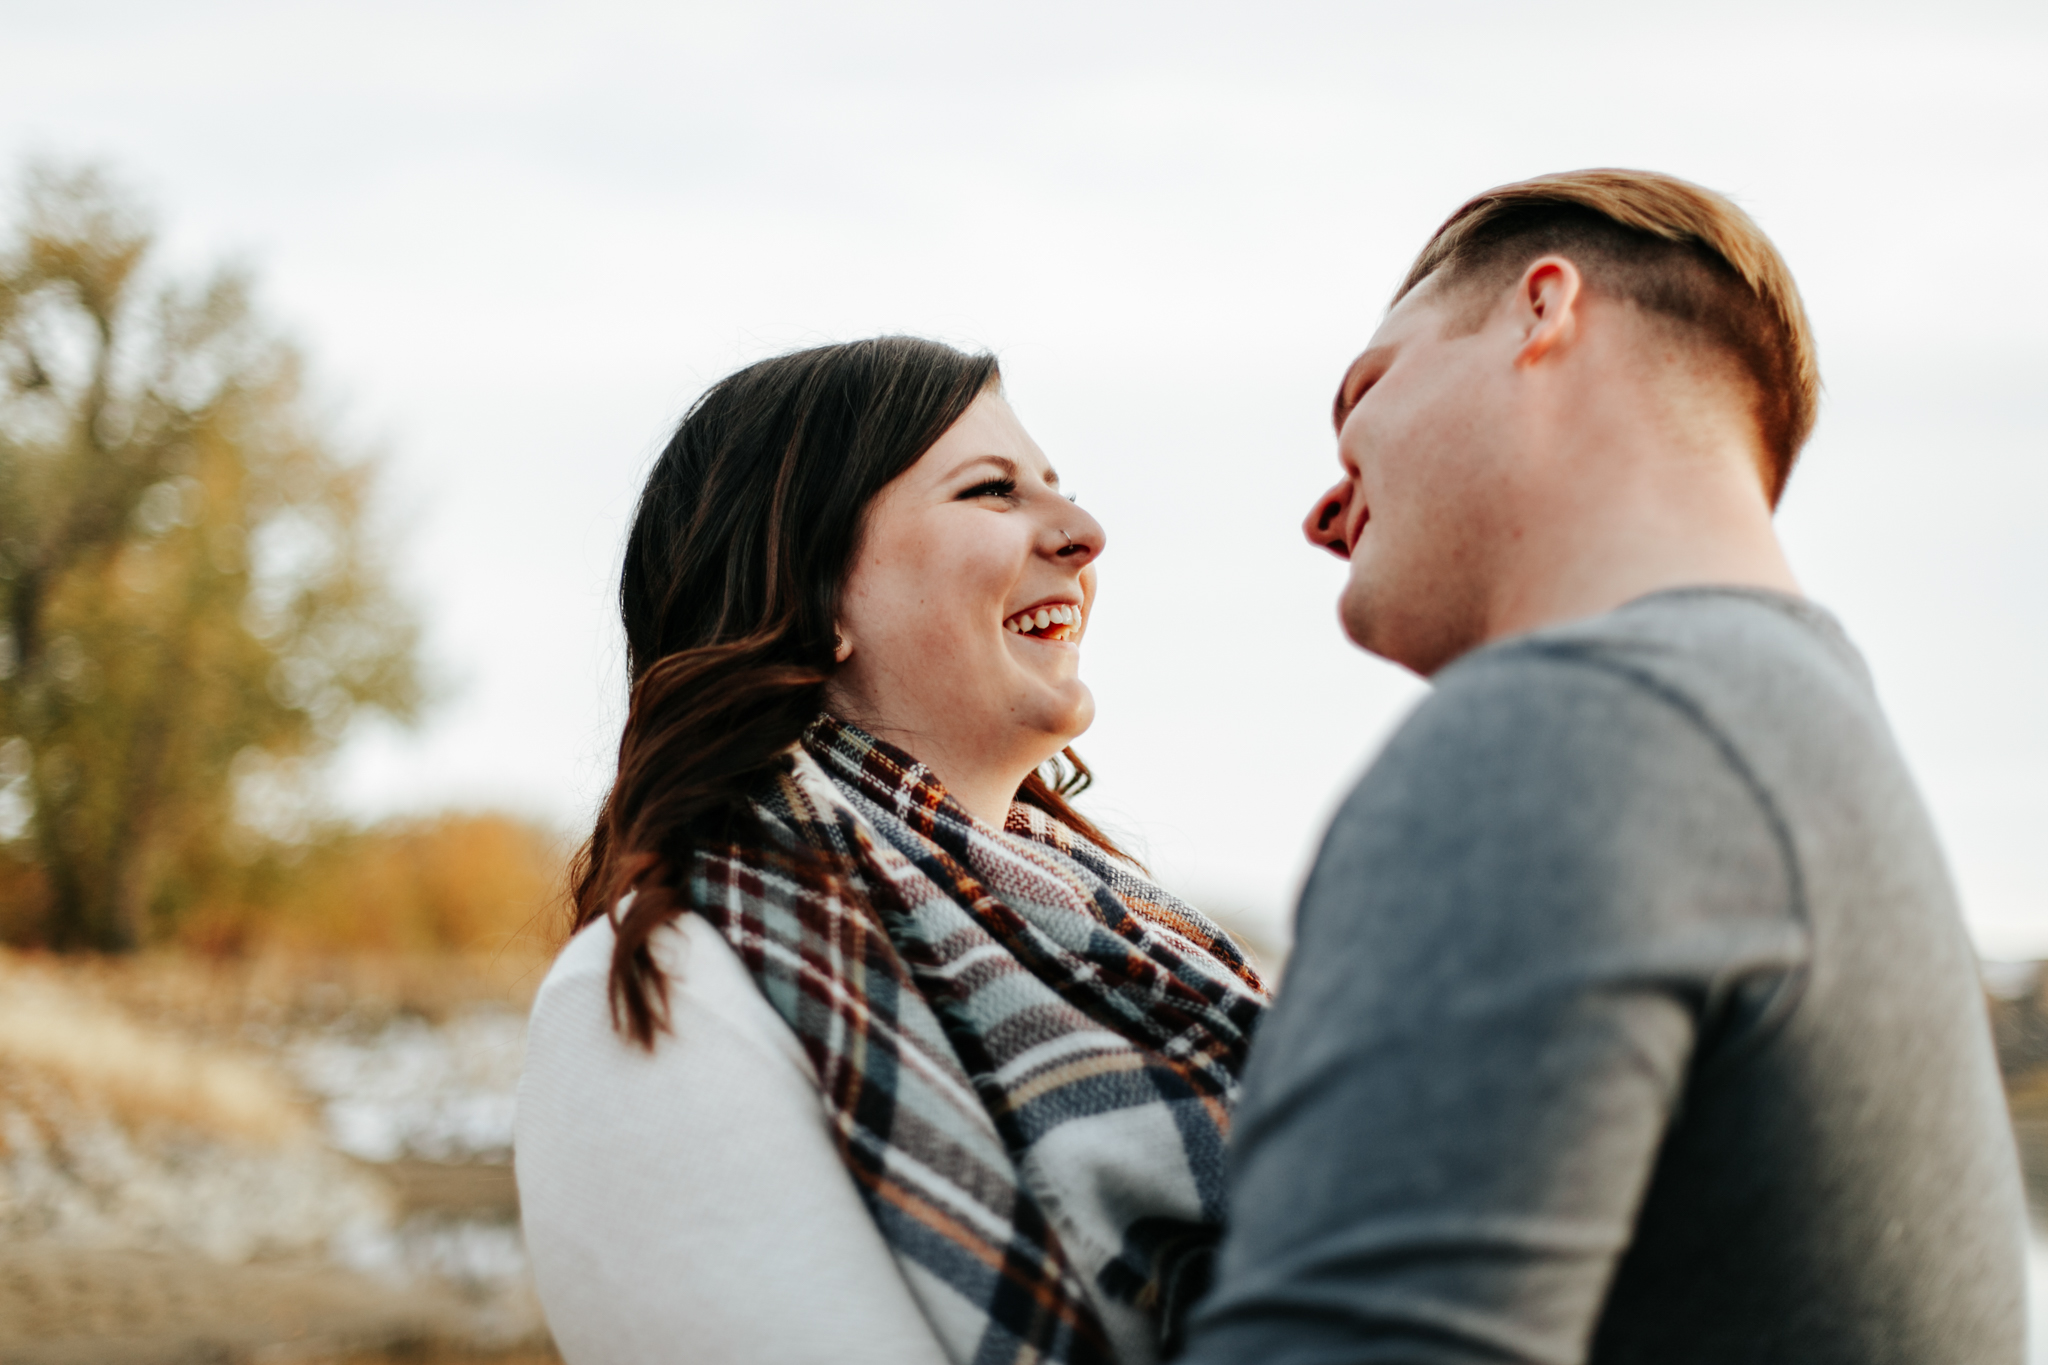 lethbridge-photographer-love-and-be-loved-photography-christy-bryan-fall-autumn-engagement-photo-image-picture-31.jpg